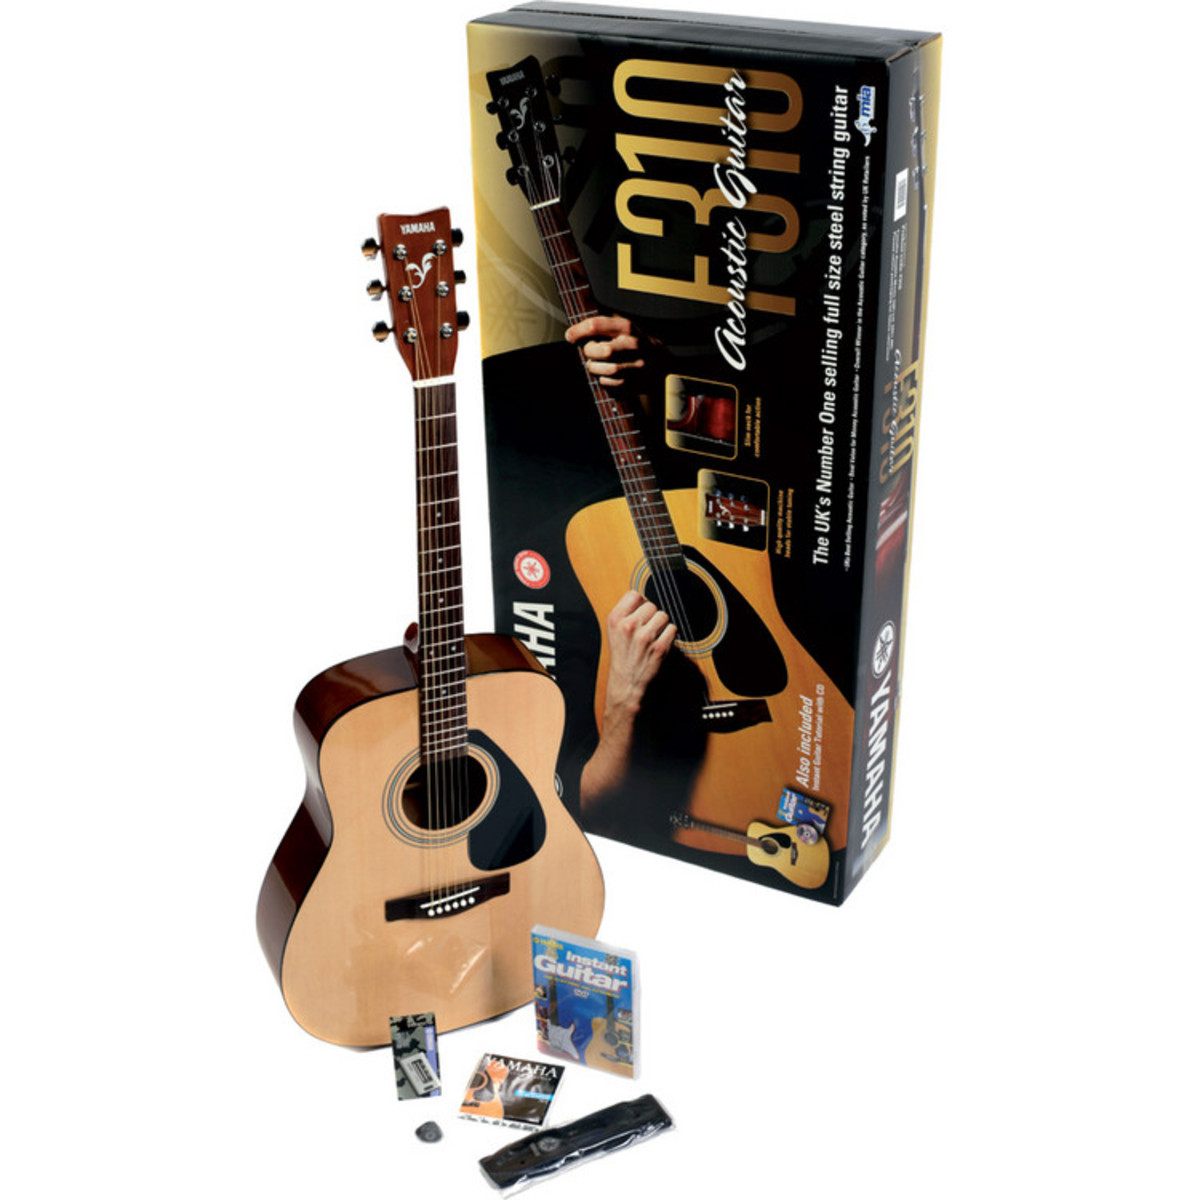 yamaha f310p2ws acoustic guitar beginners pack at gear4music. Black Bedroom Furniture Sets. Home Design Ideas